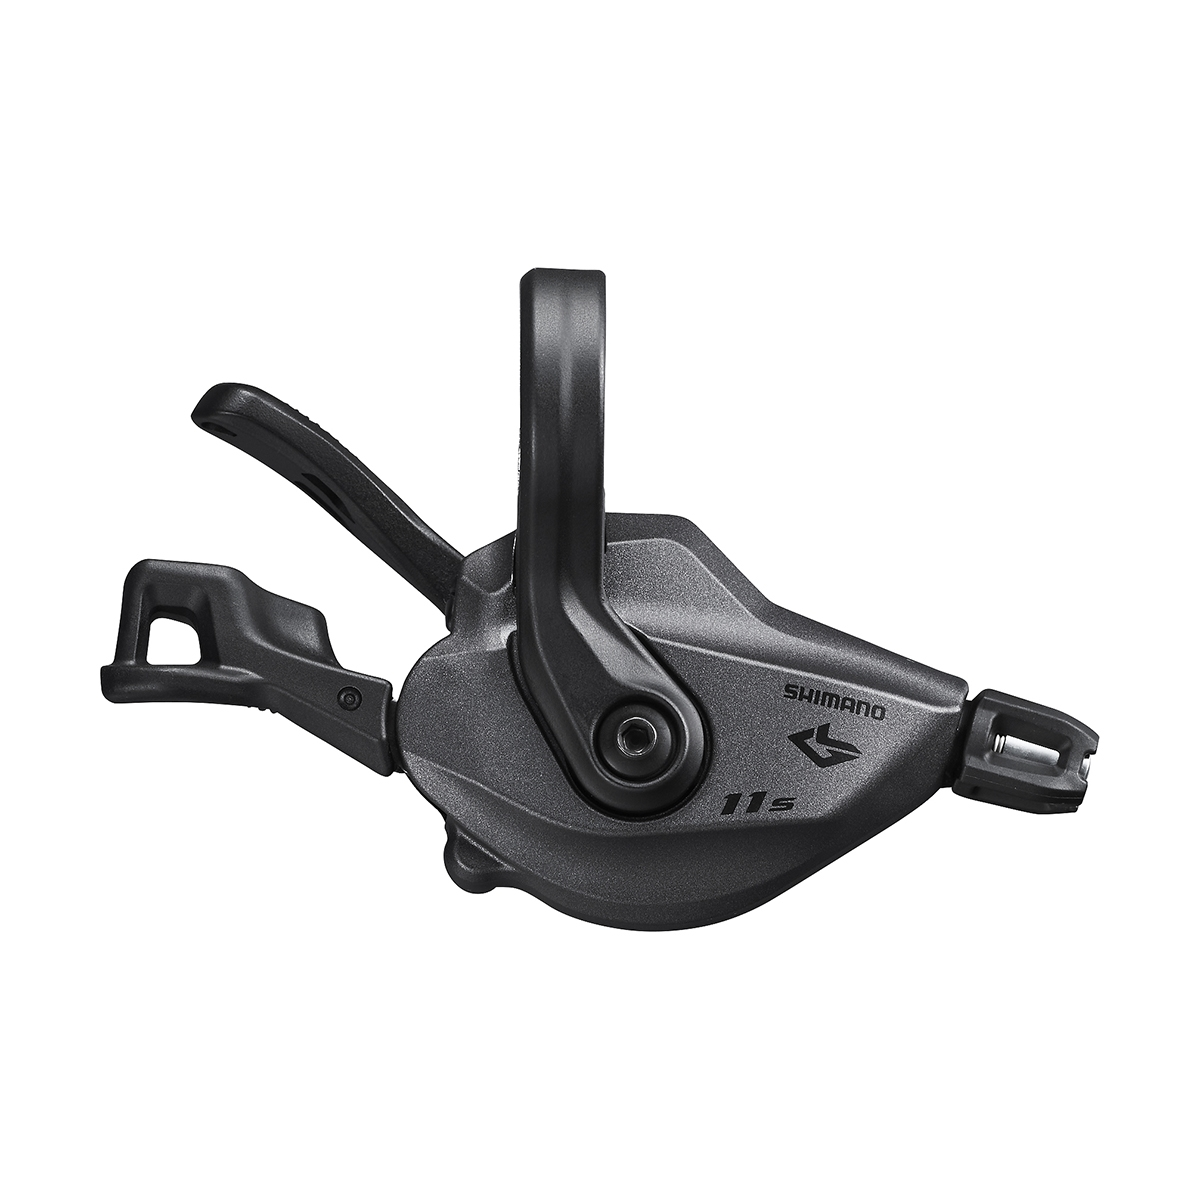 Shift Lever Right 11v SL-M8130-R Deore XT Linkglide